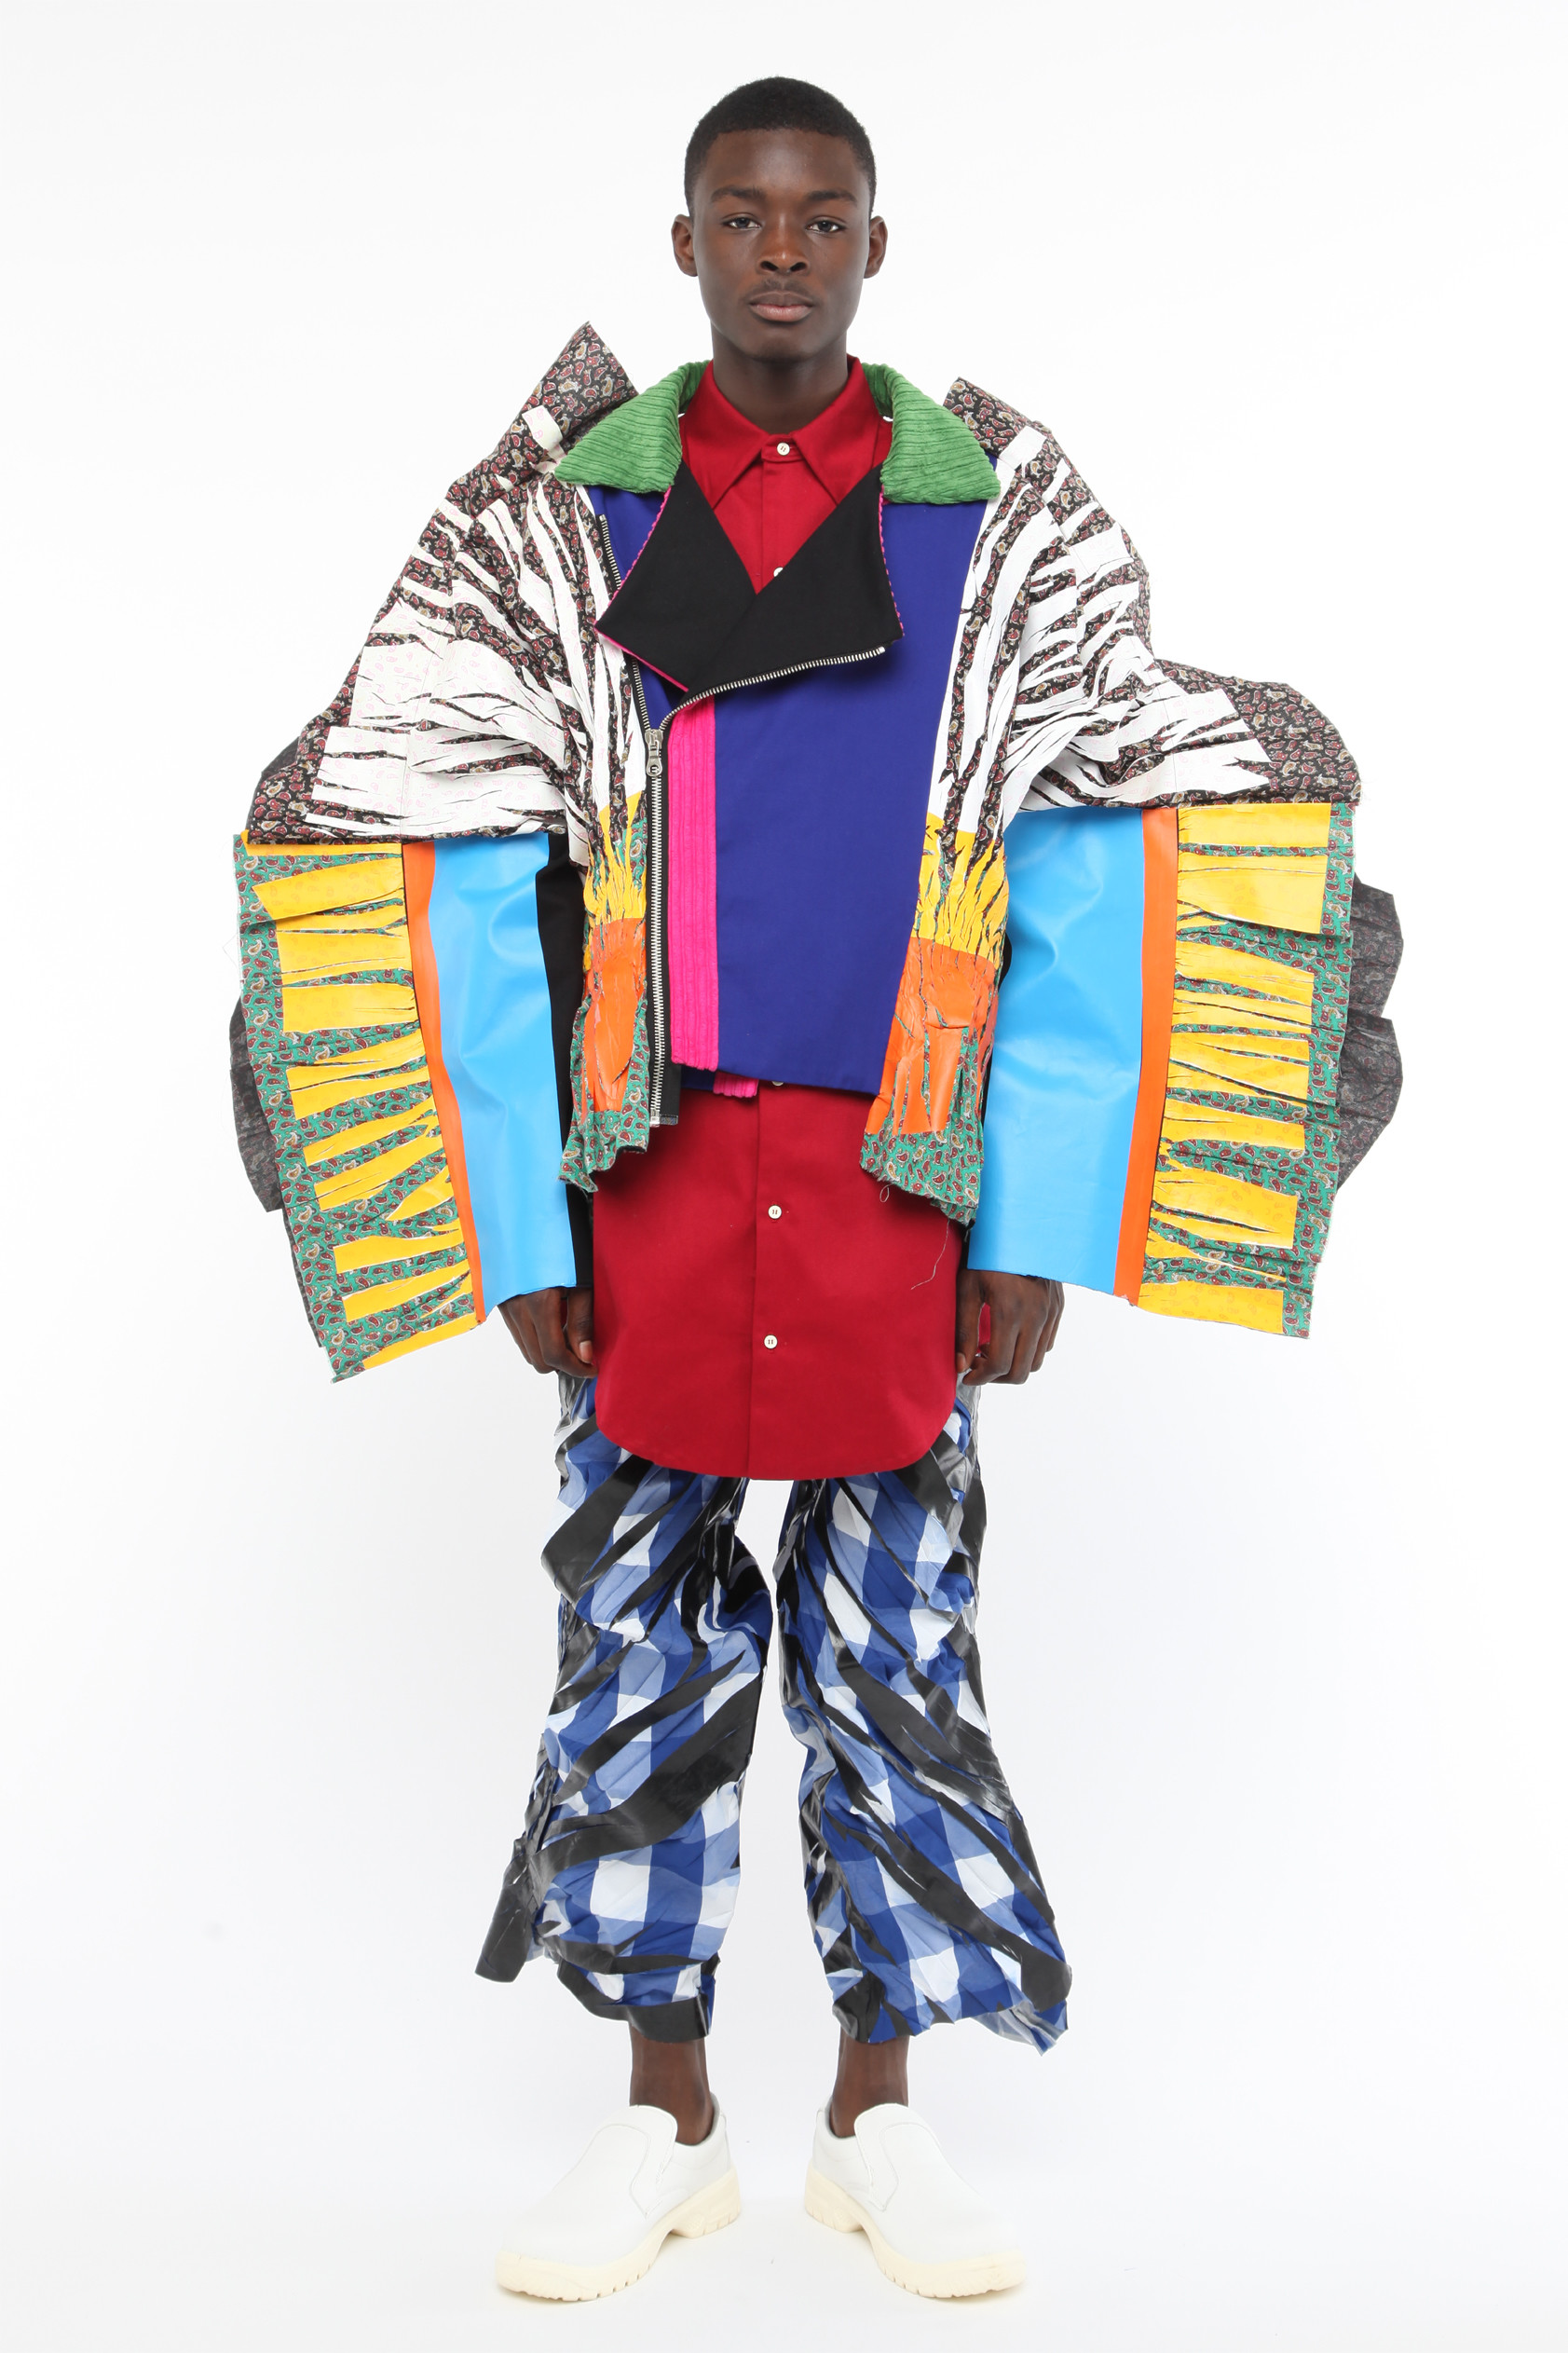 A model wears bright and oversized pants and a jacket design by Wataru Tominaga.